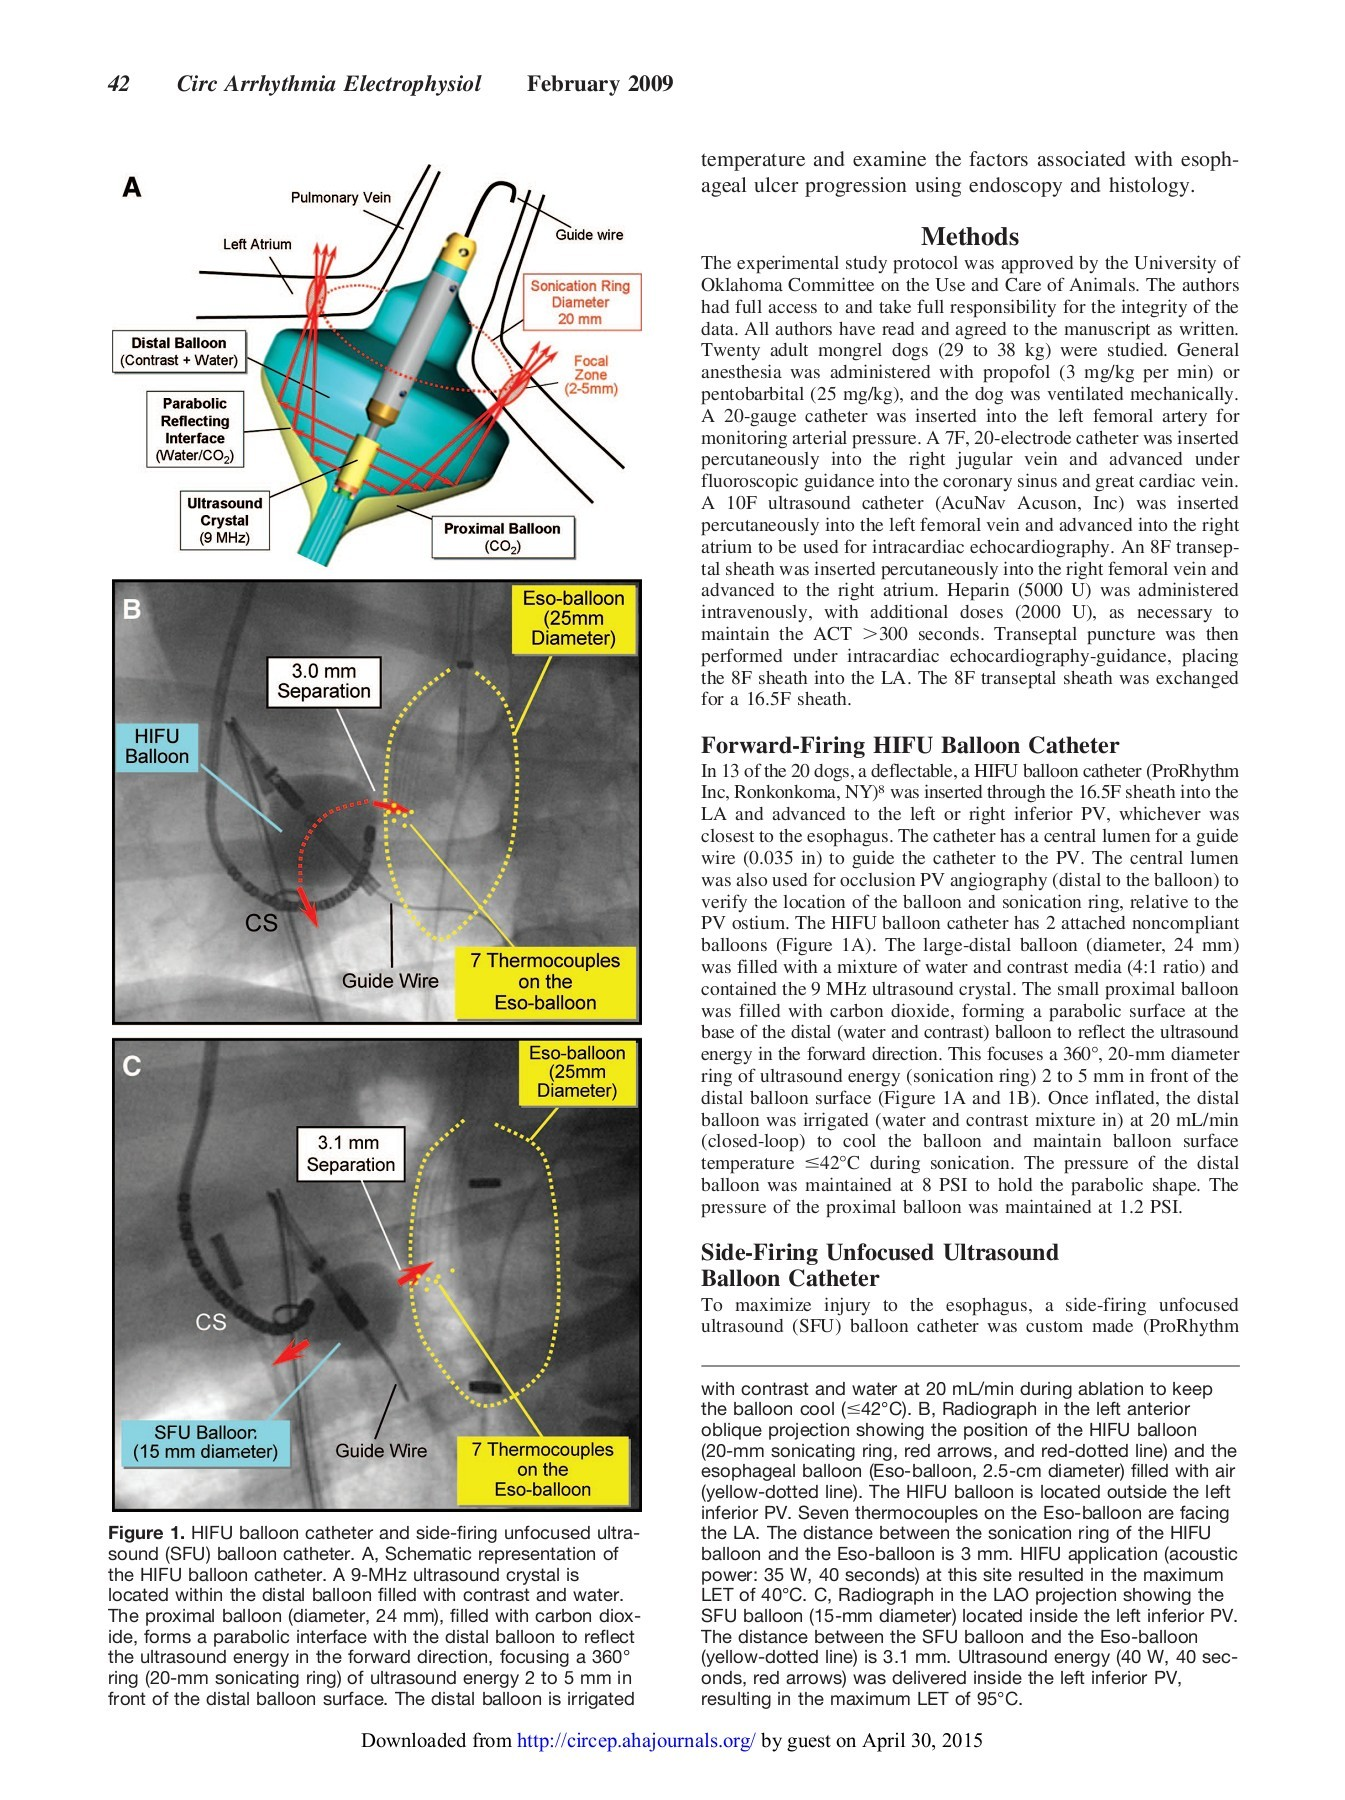 hight resolution of canine model of esophageal injury and atrial esophageal pages 1 10 text version fliphtml5